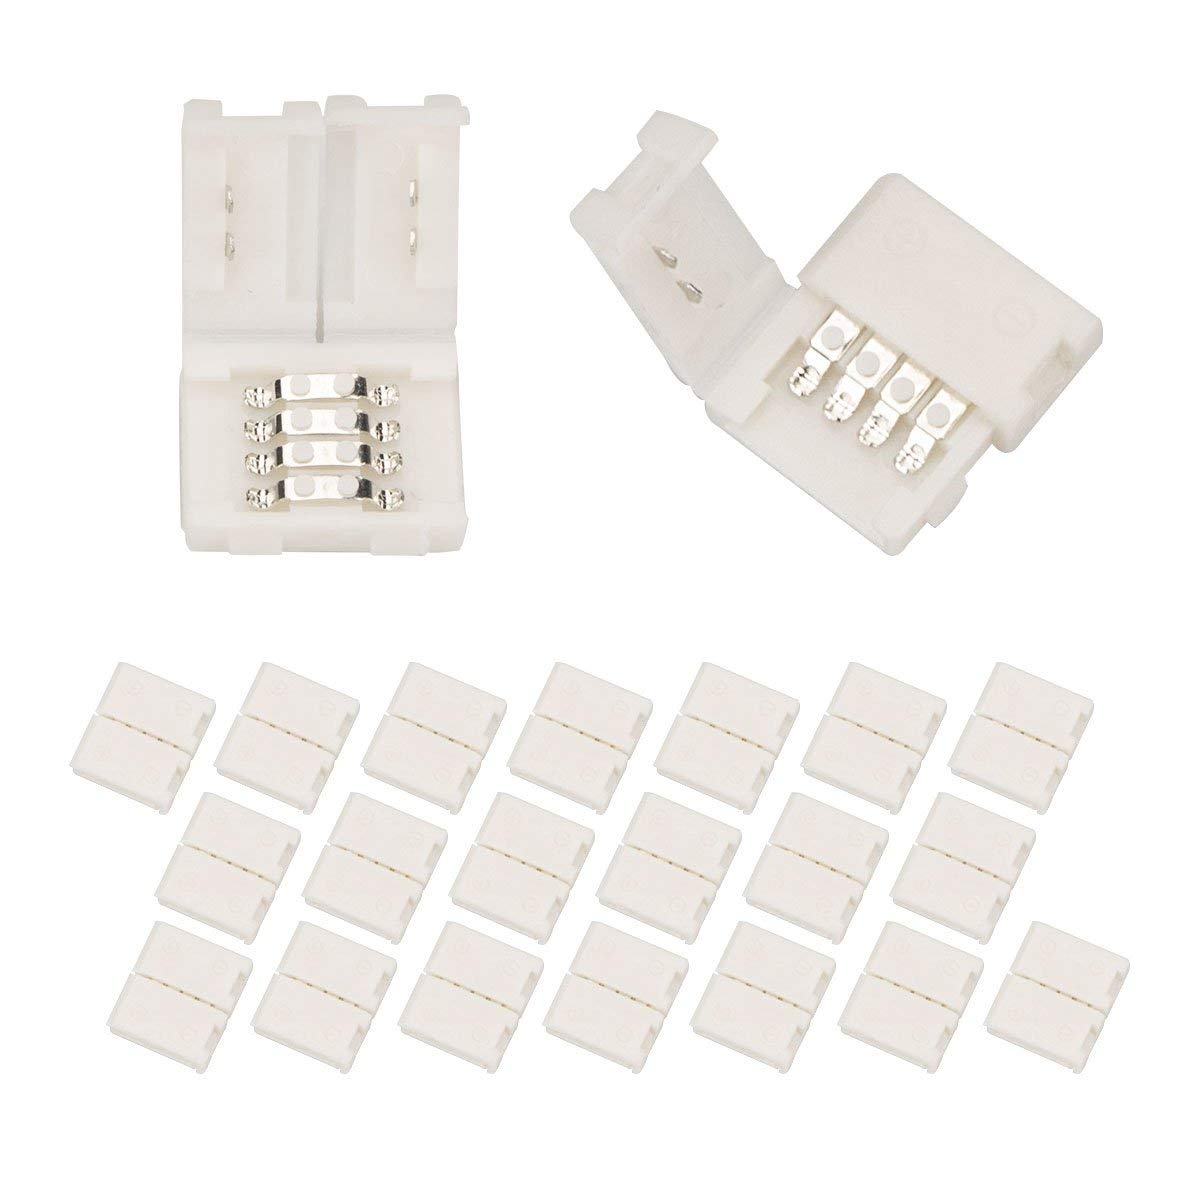 LED Strip Light Connector 20PCS Clips